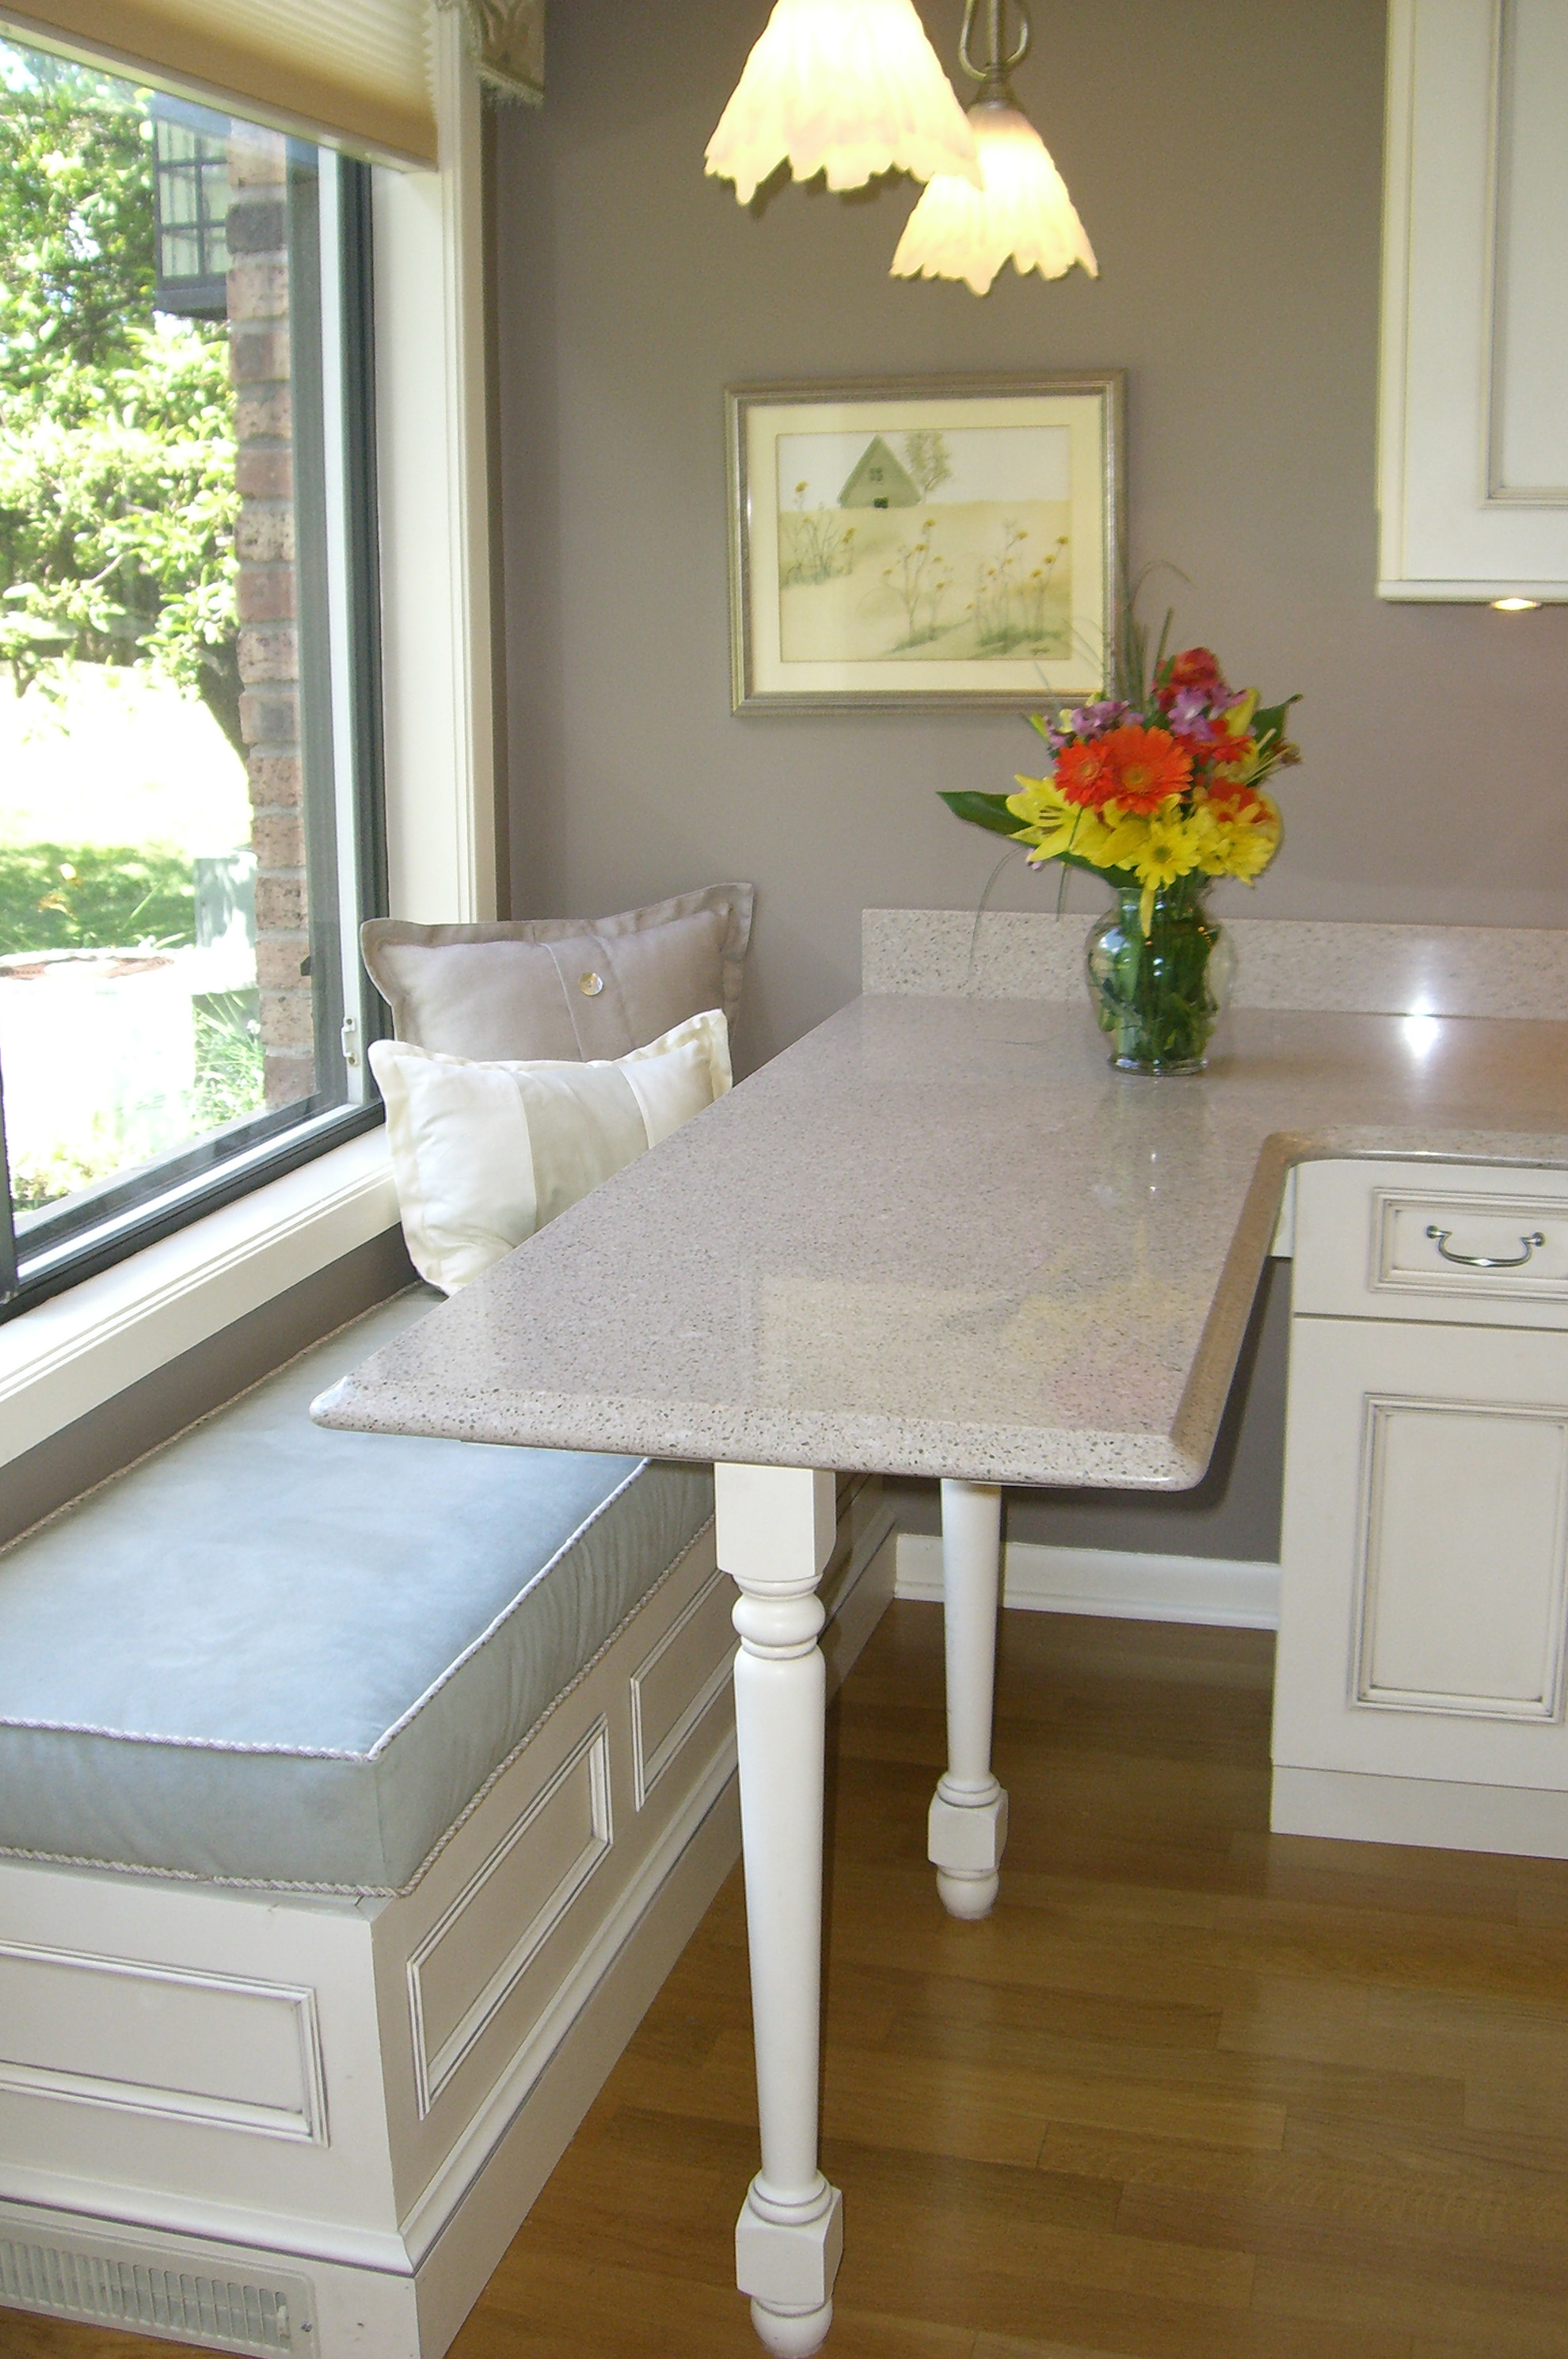 Wheelchair accessible kitchen